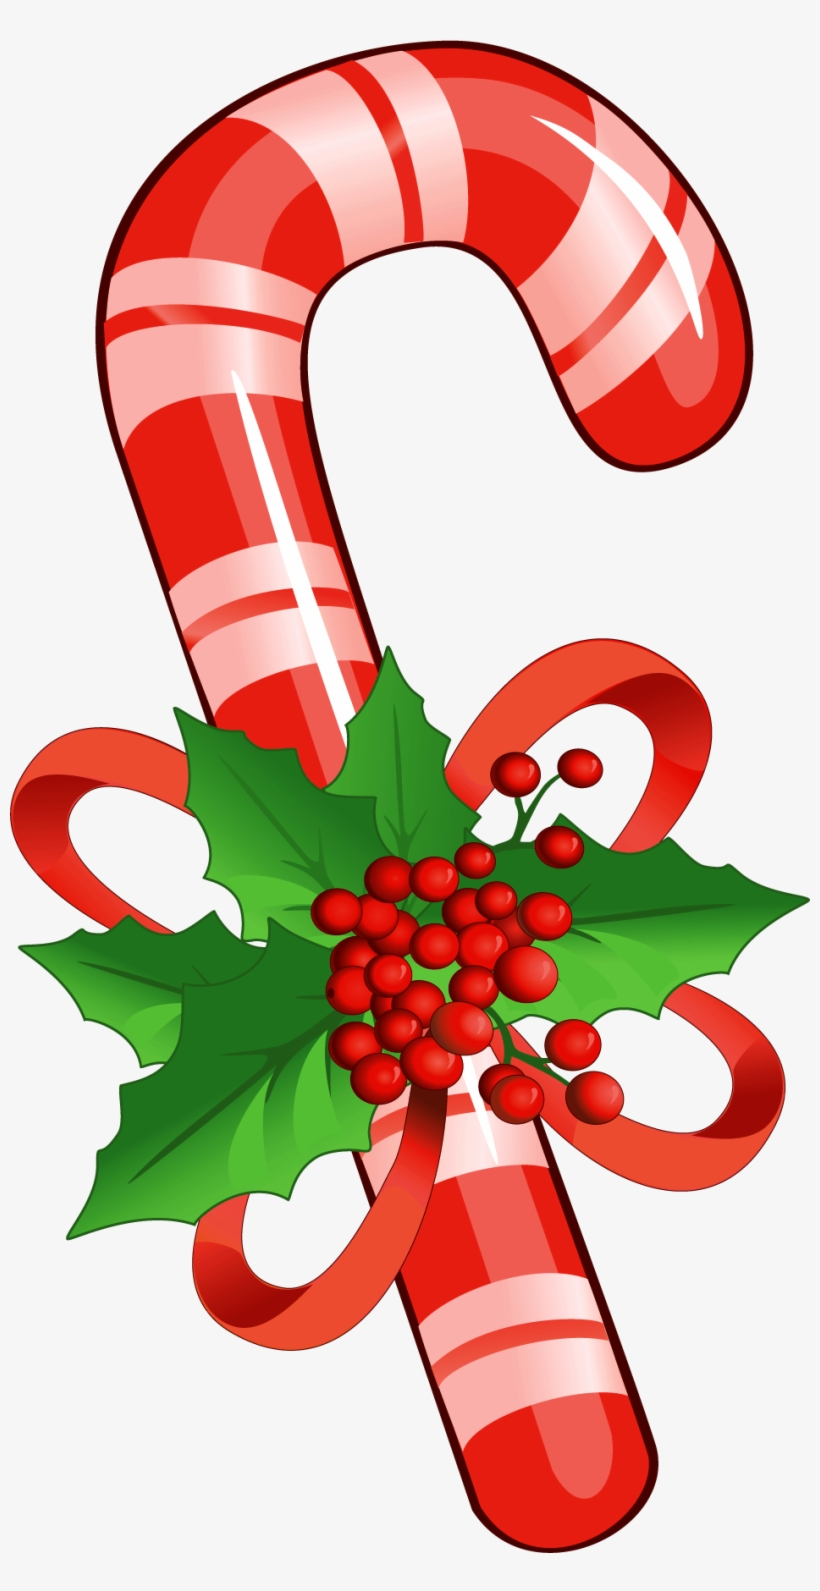 Candy Cane With Mistletoe Png Clipart Yopriceville.